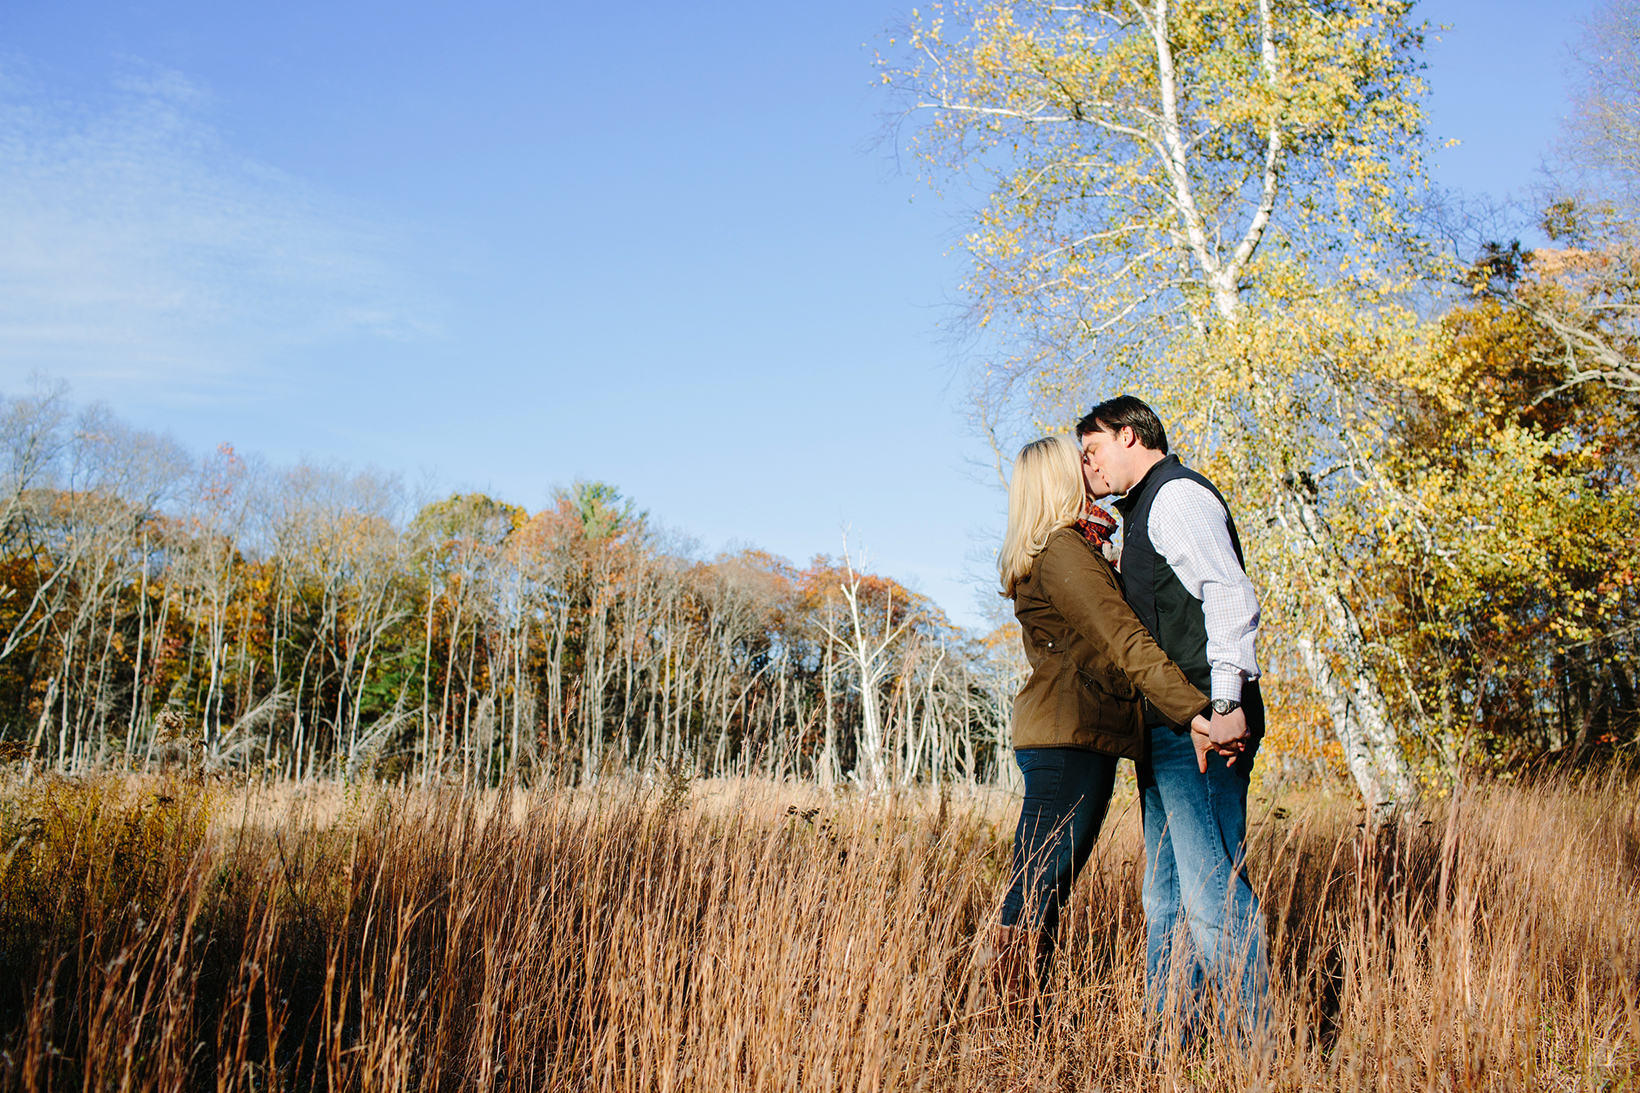 Cape Cod wedding blog photo from Stacey Hedman | Photography about Foliage Engagement at World's End